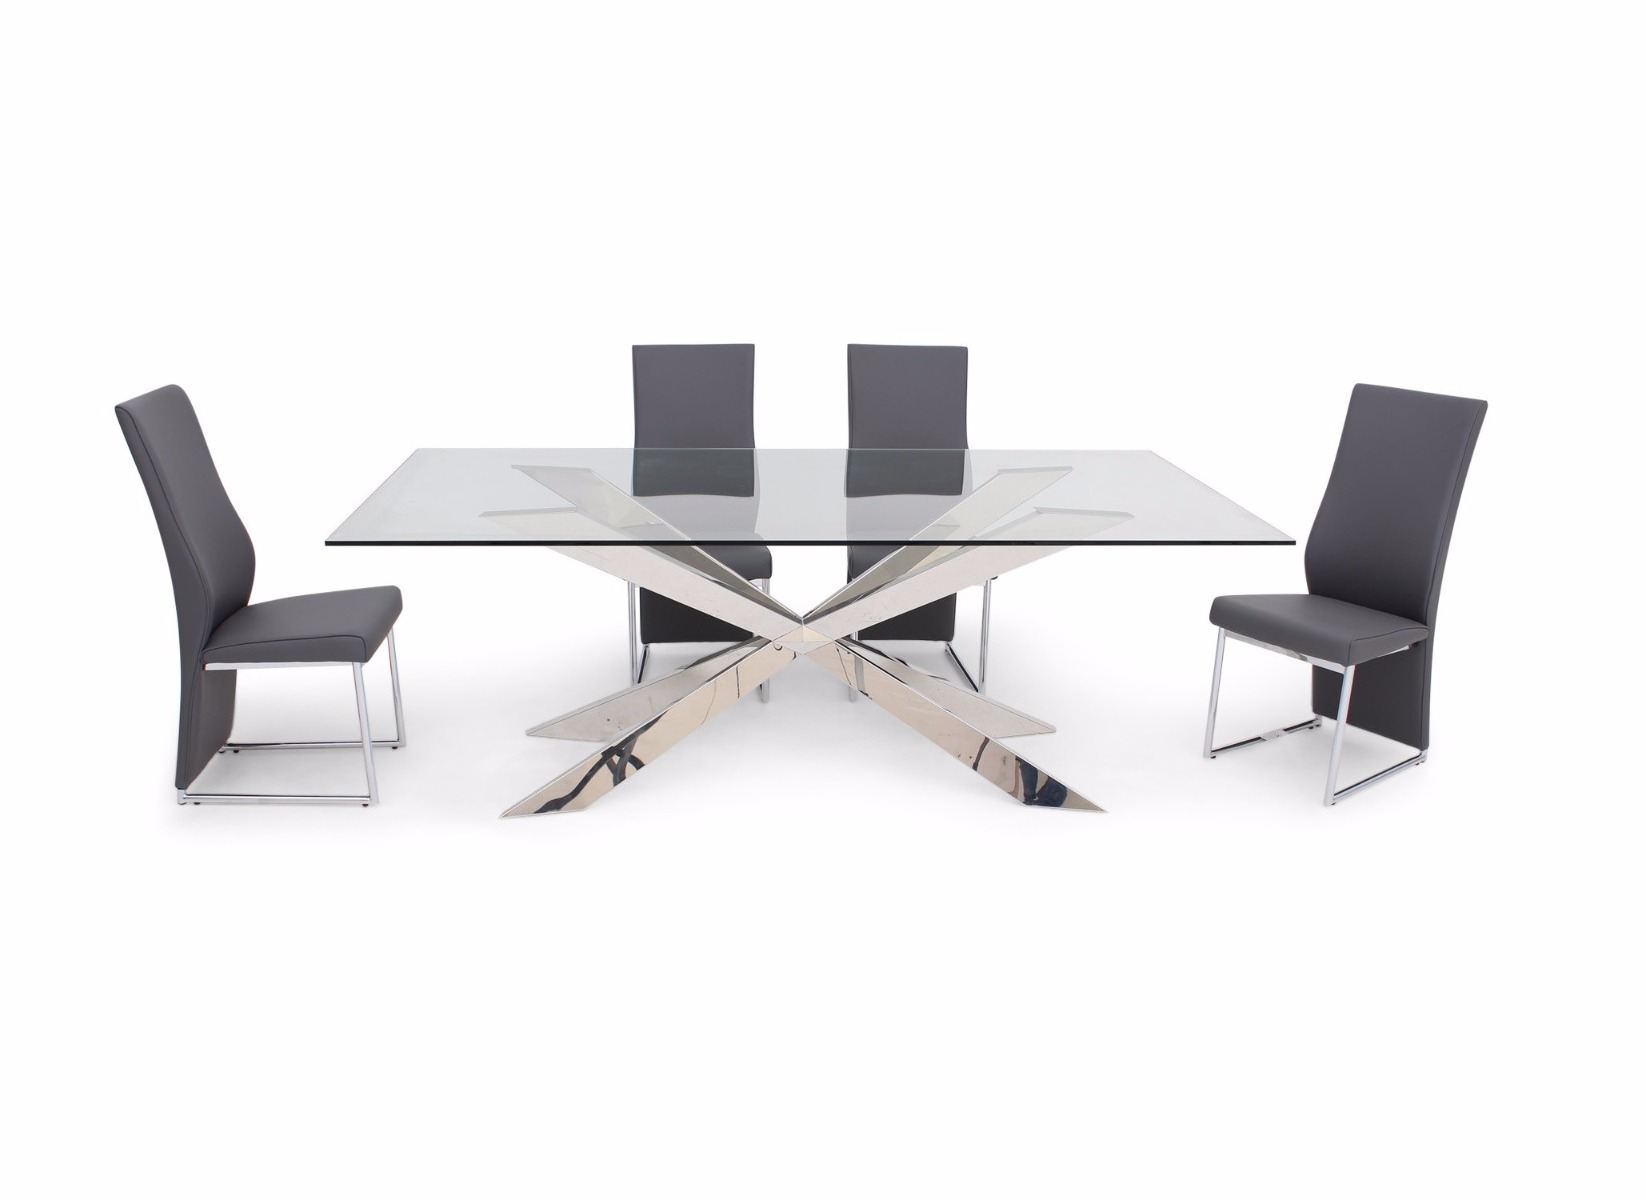 https://www.firstfurniture.co.uk/pub/media/catalog/product/g/a/gabriella_table_with_remo_grey_chairs_5.jpg